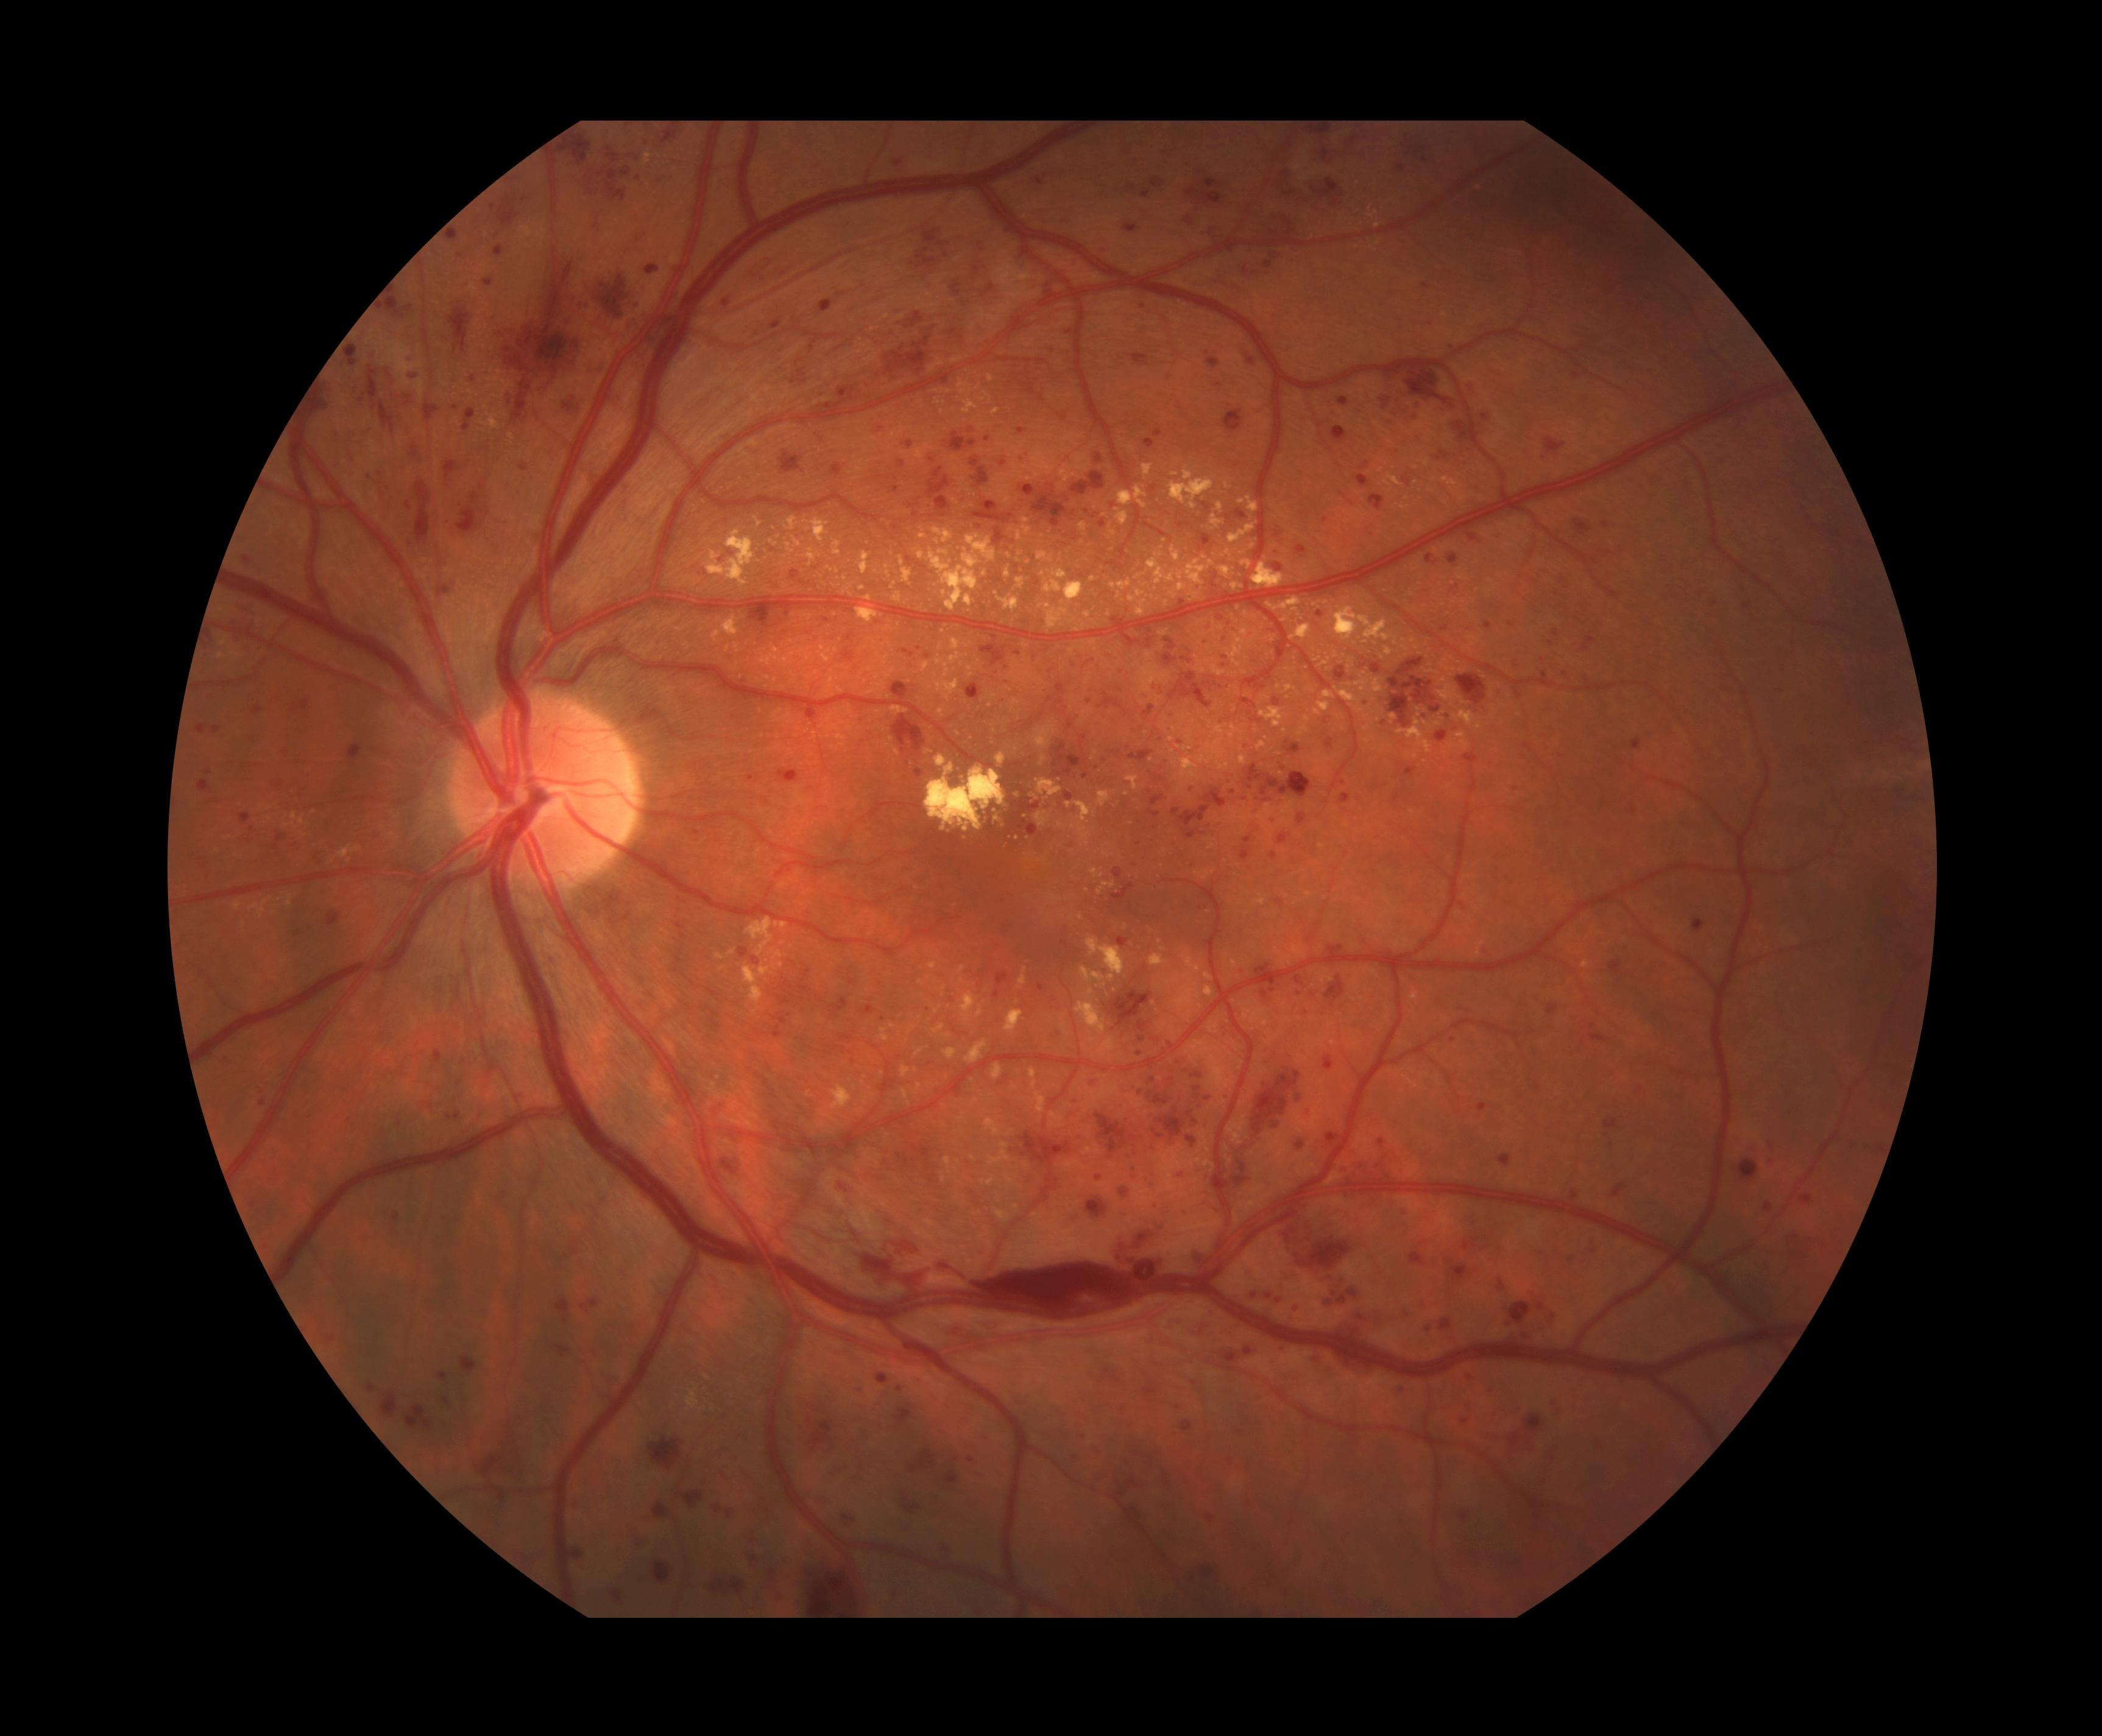 Comparison Between Diabetic Retinopathy And Hypertensive Retinopathy